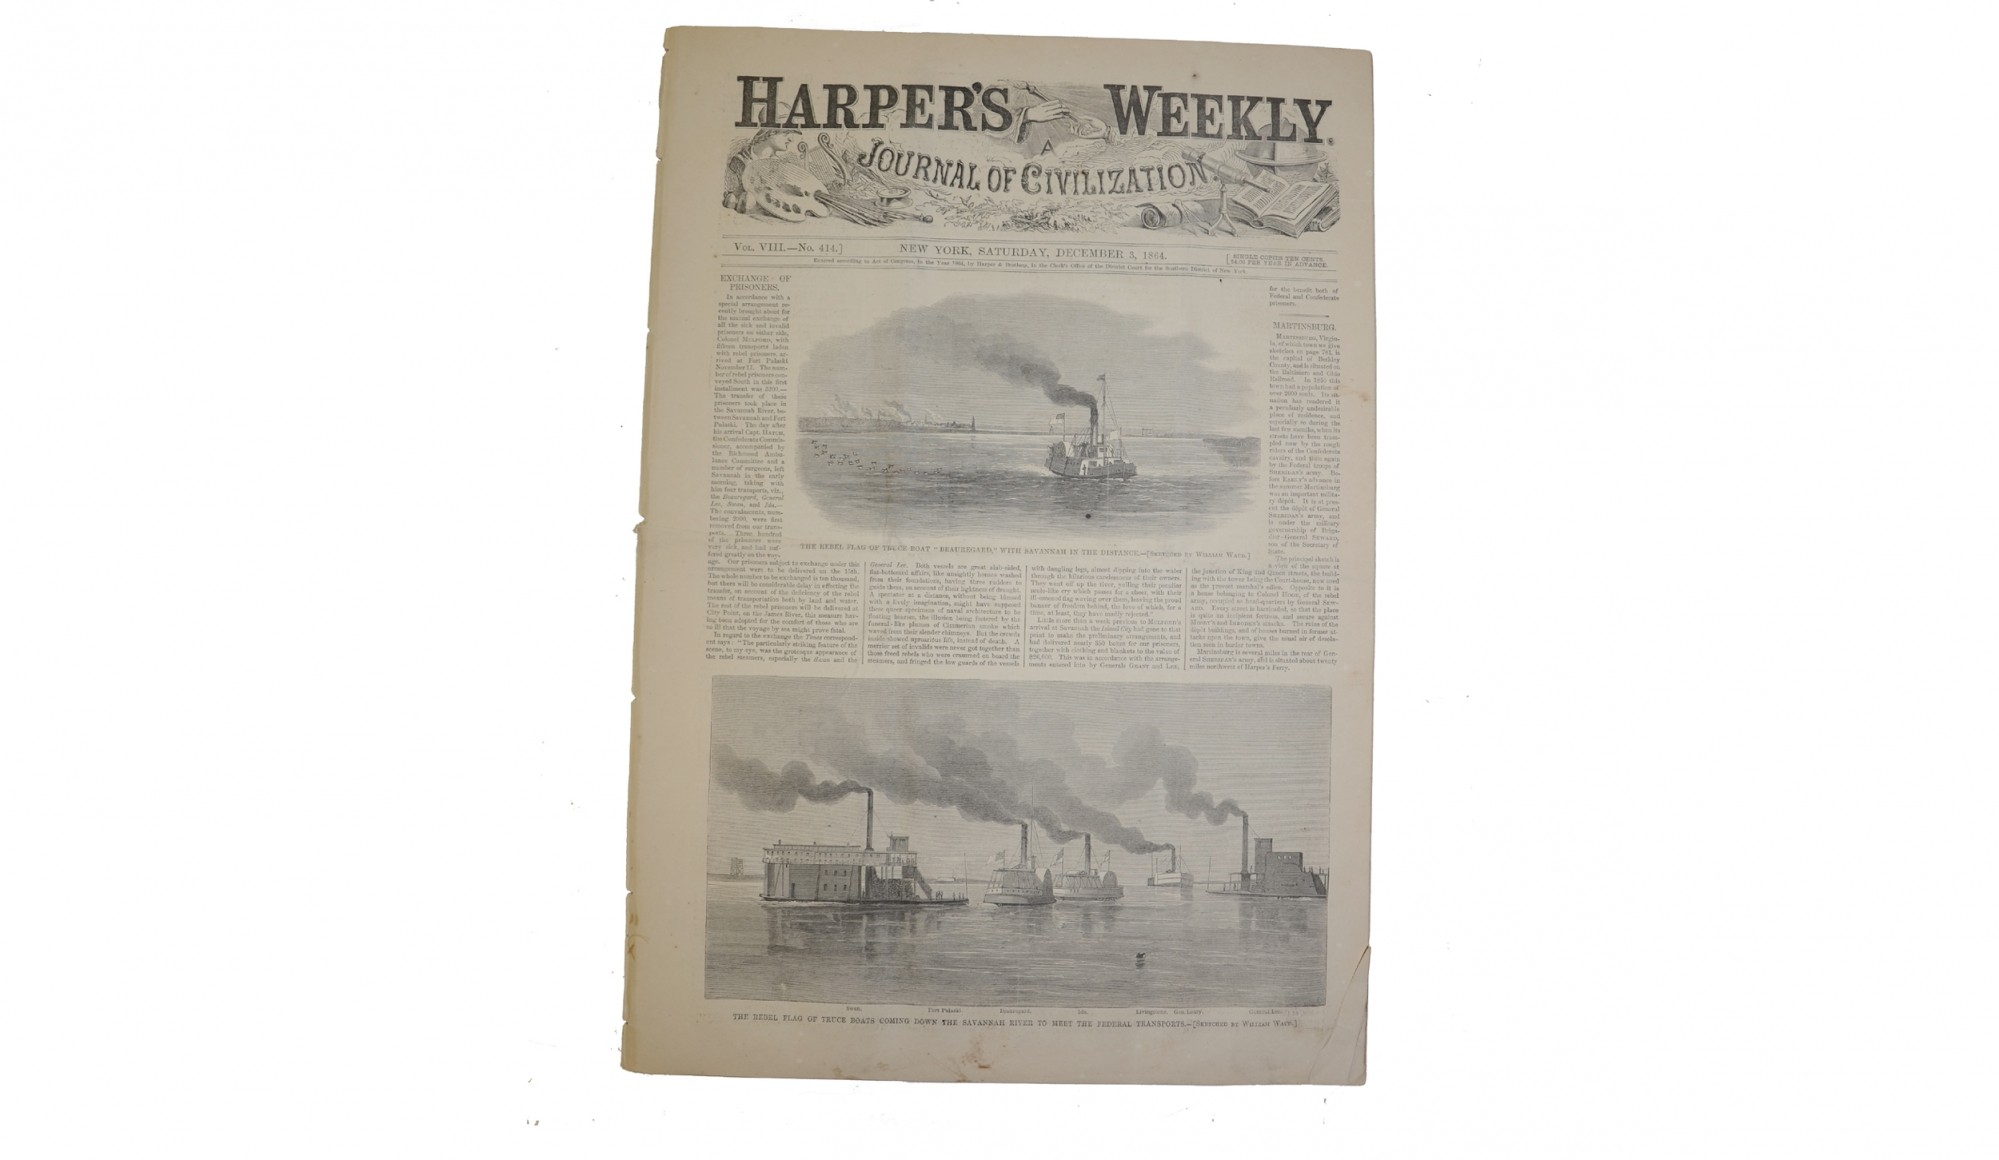 HARPER'S WEEKLY, DATED DECEMBER 4, 1864 – PRISONER EXCHANGE / THANKSGIVING